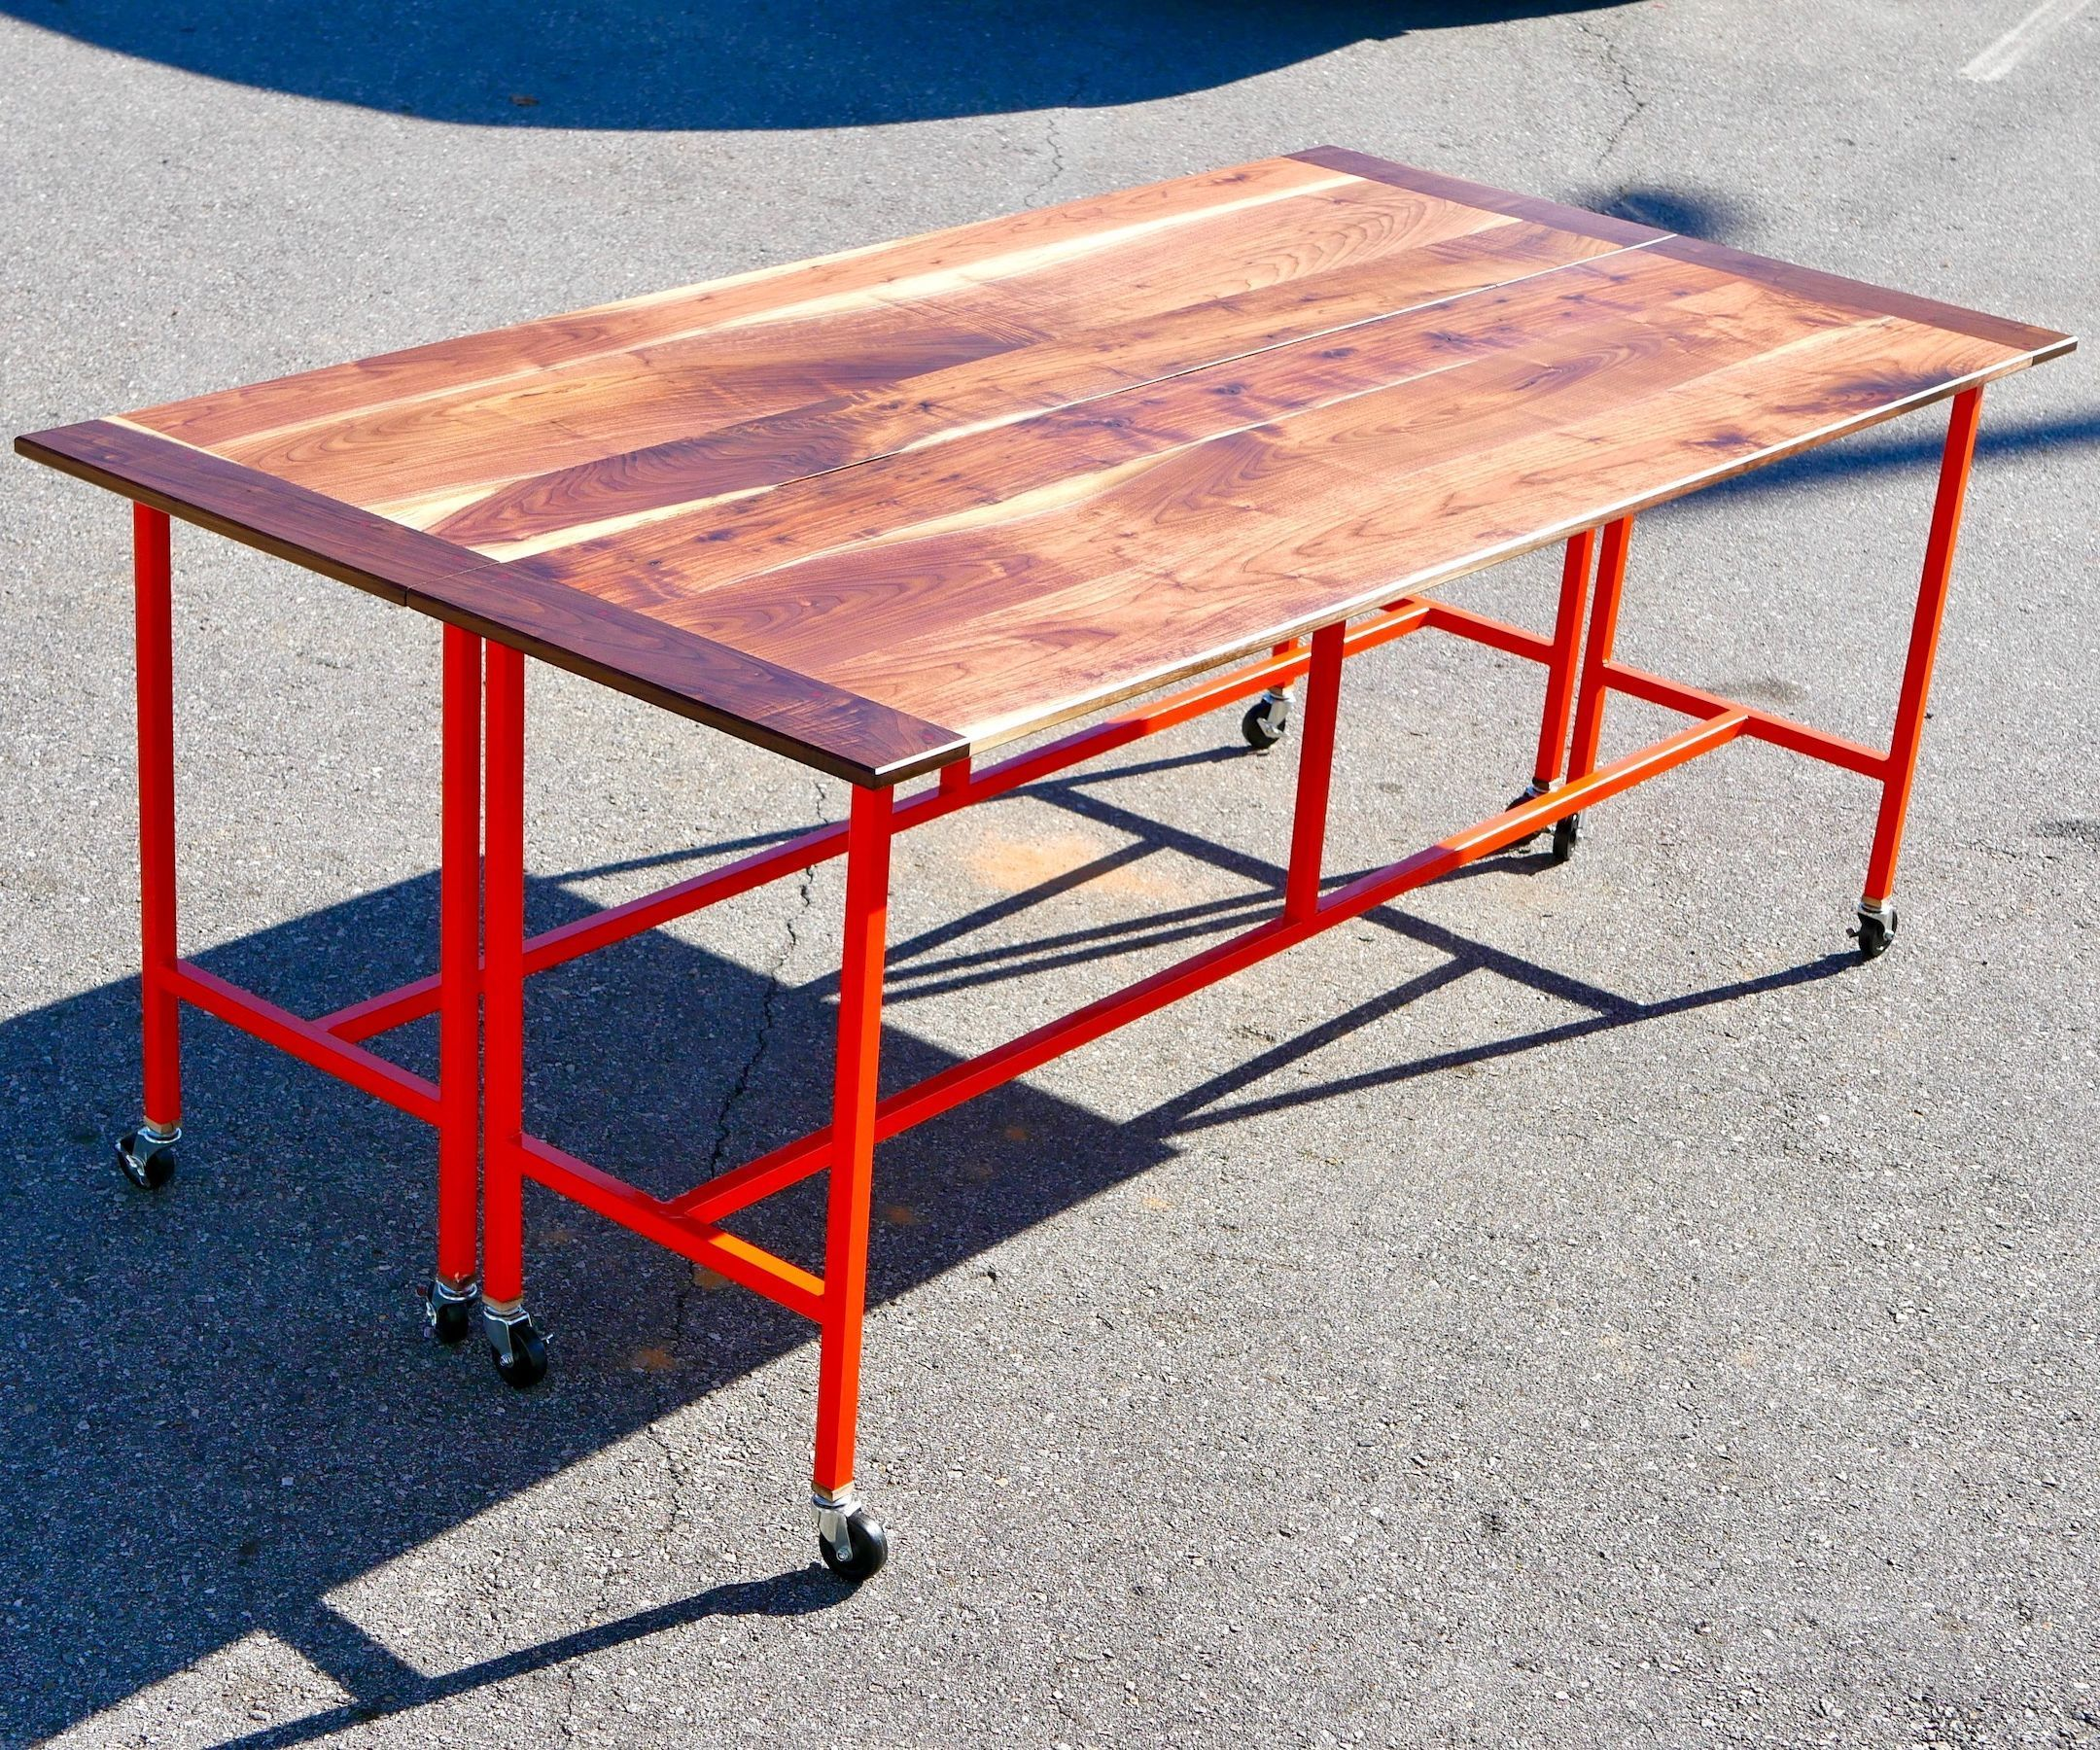 How To Build A Conference Table / Dining Table w/ Walnut & Steel